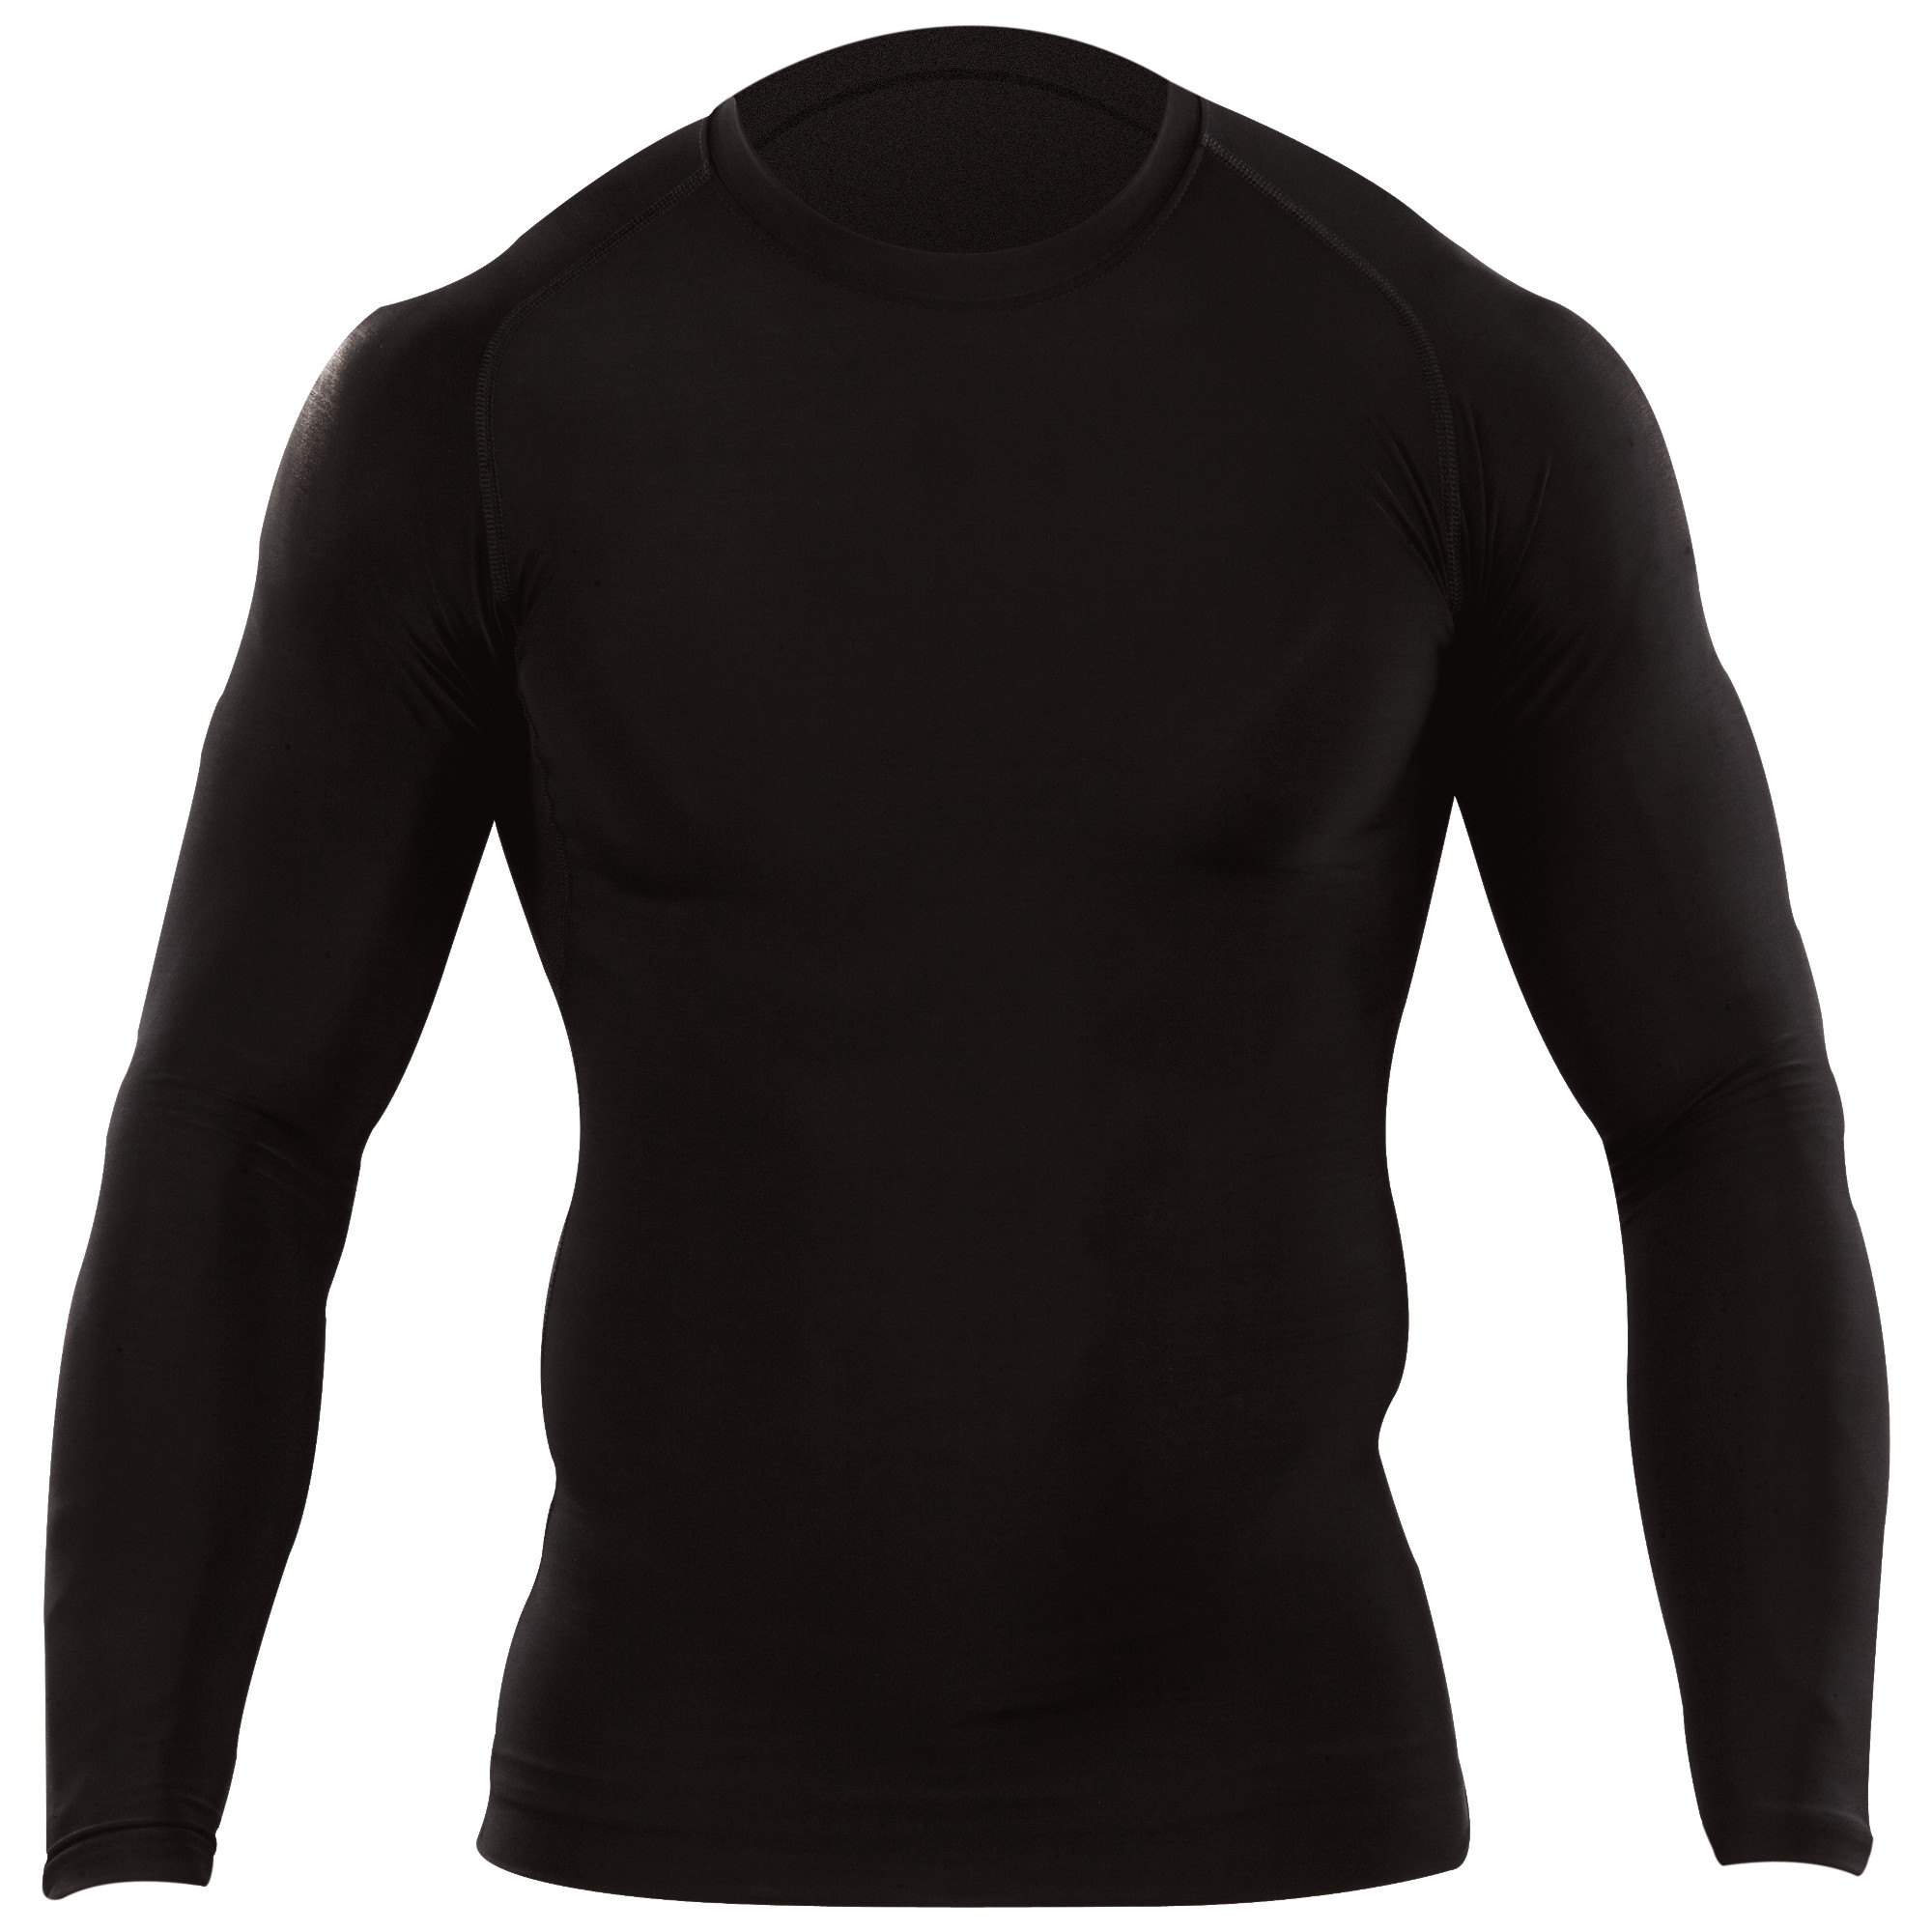 5.11 Mens Long Sleeve Tight Crew Shirt 40006